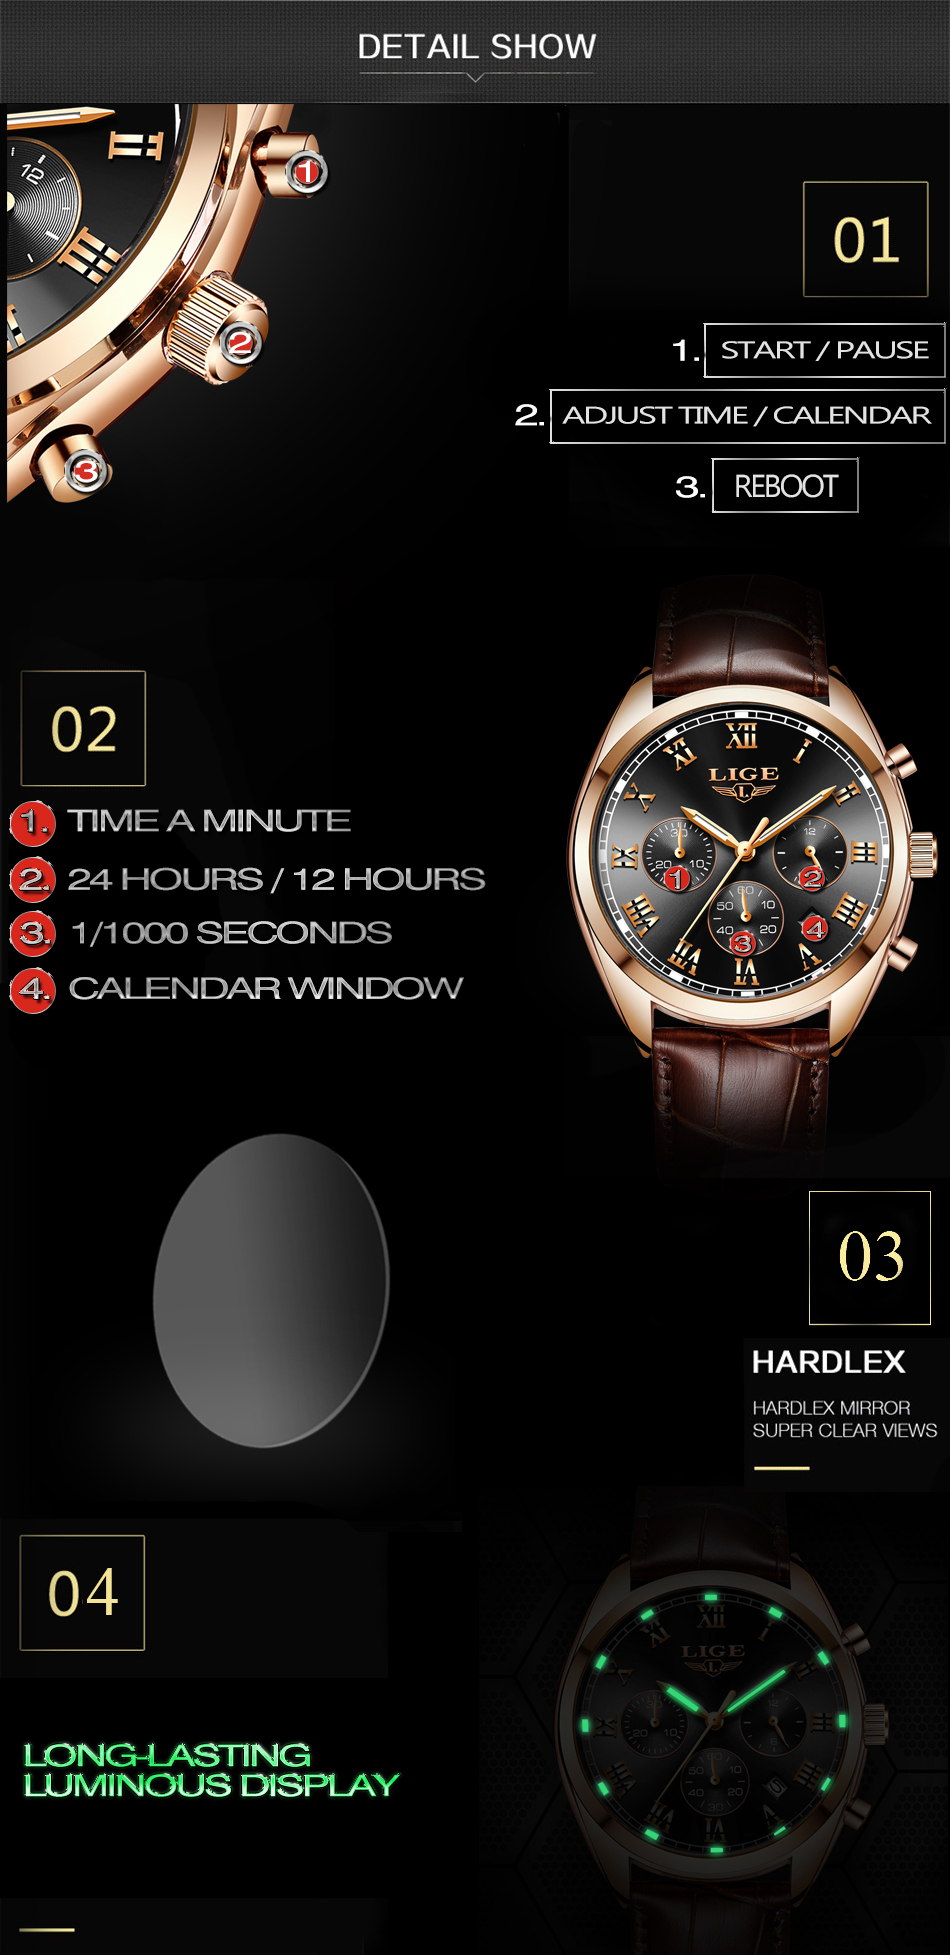 HTB1EyP7wnlYBeNjSszcq6zwhFXae 2020 LIGE Mens Watches Top Brand Luxury Waterproof 24 Hour Date Quartz Clock  Male Leather Sport Wrist Watch Relogio Masculino